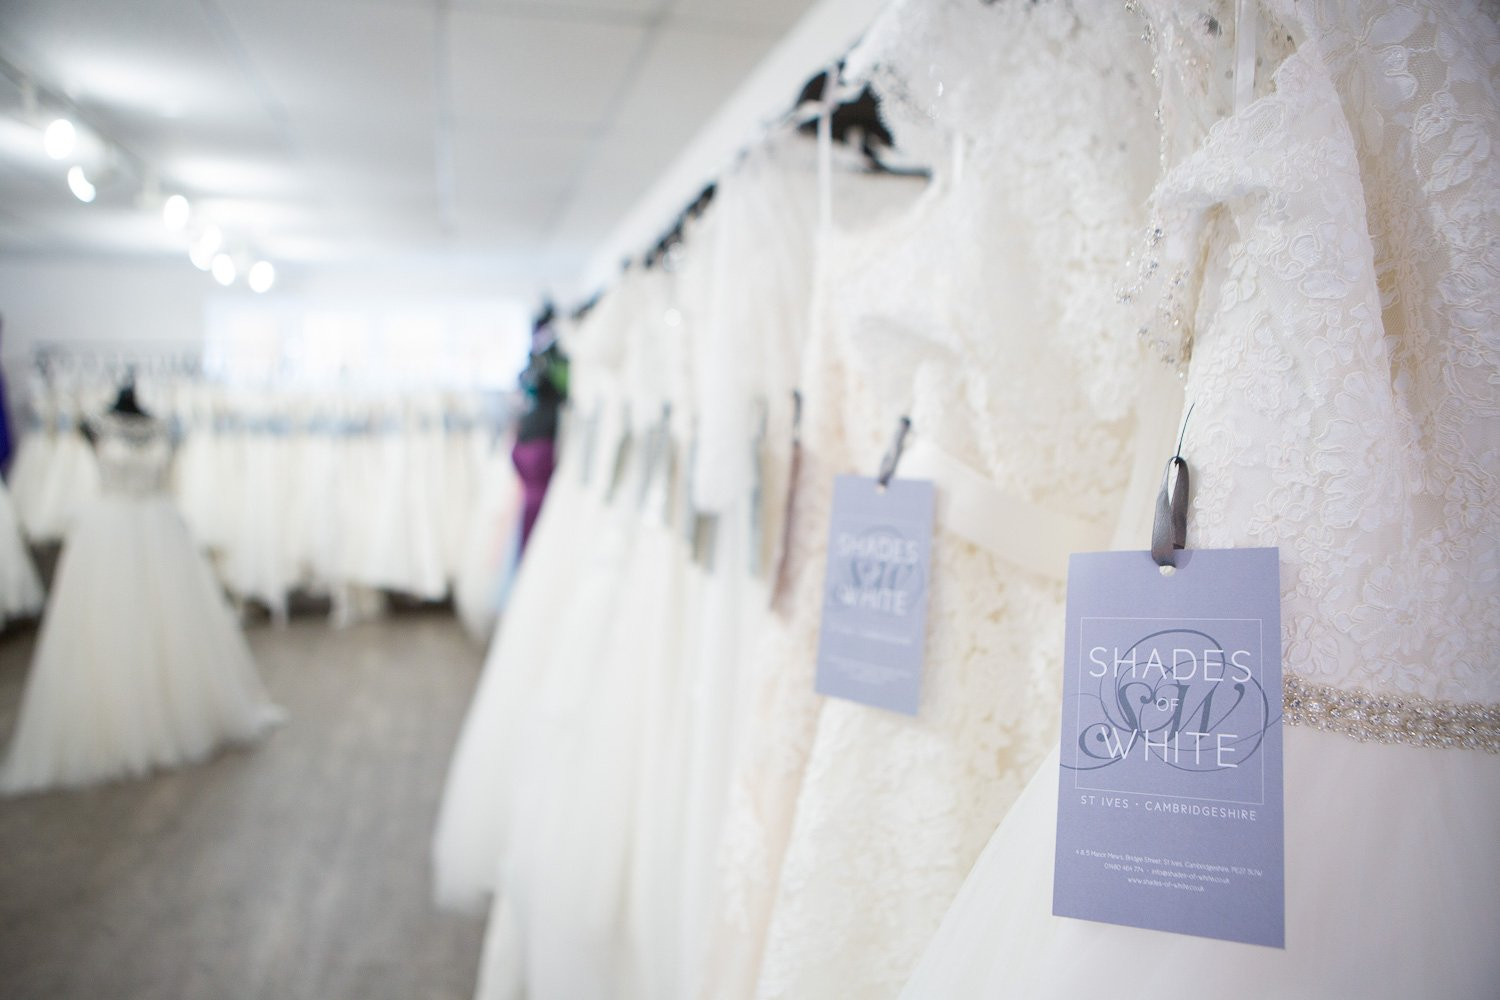 Wedding gowns in a wedding boutique, one of our wedding suppliers